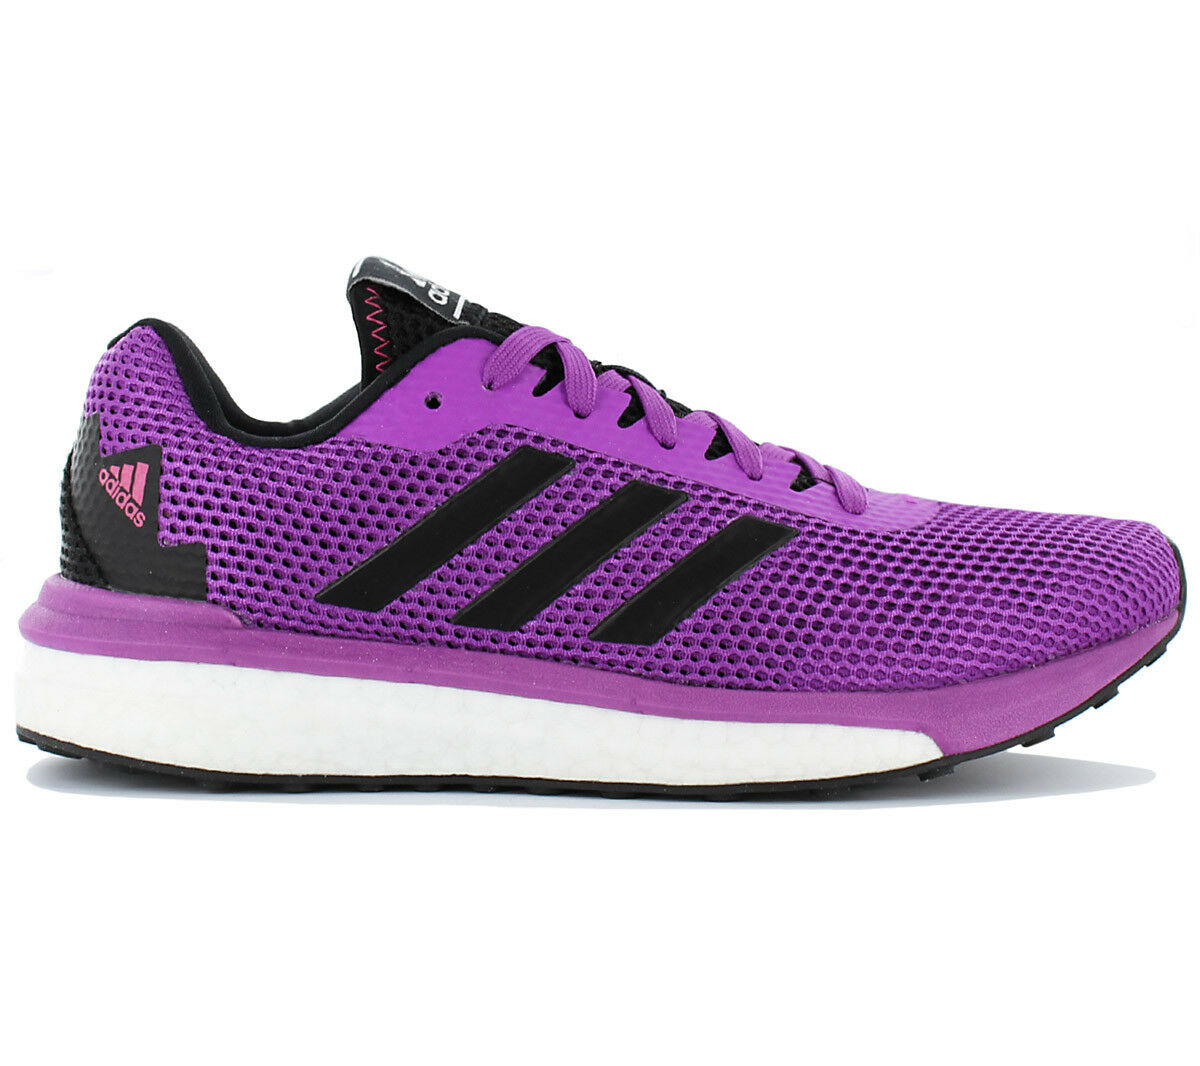 Adidas Vengeful W Boost Ladies Running shoes Running Jogging Fitness shoes AQ609